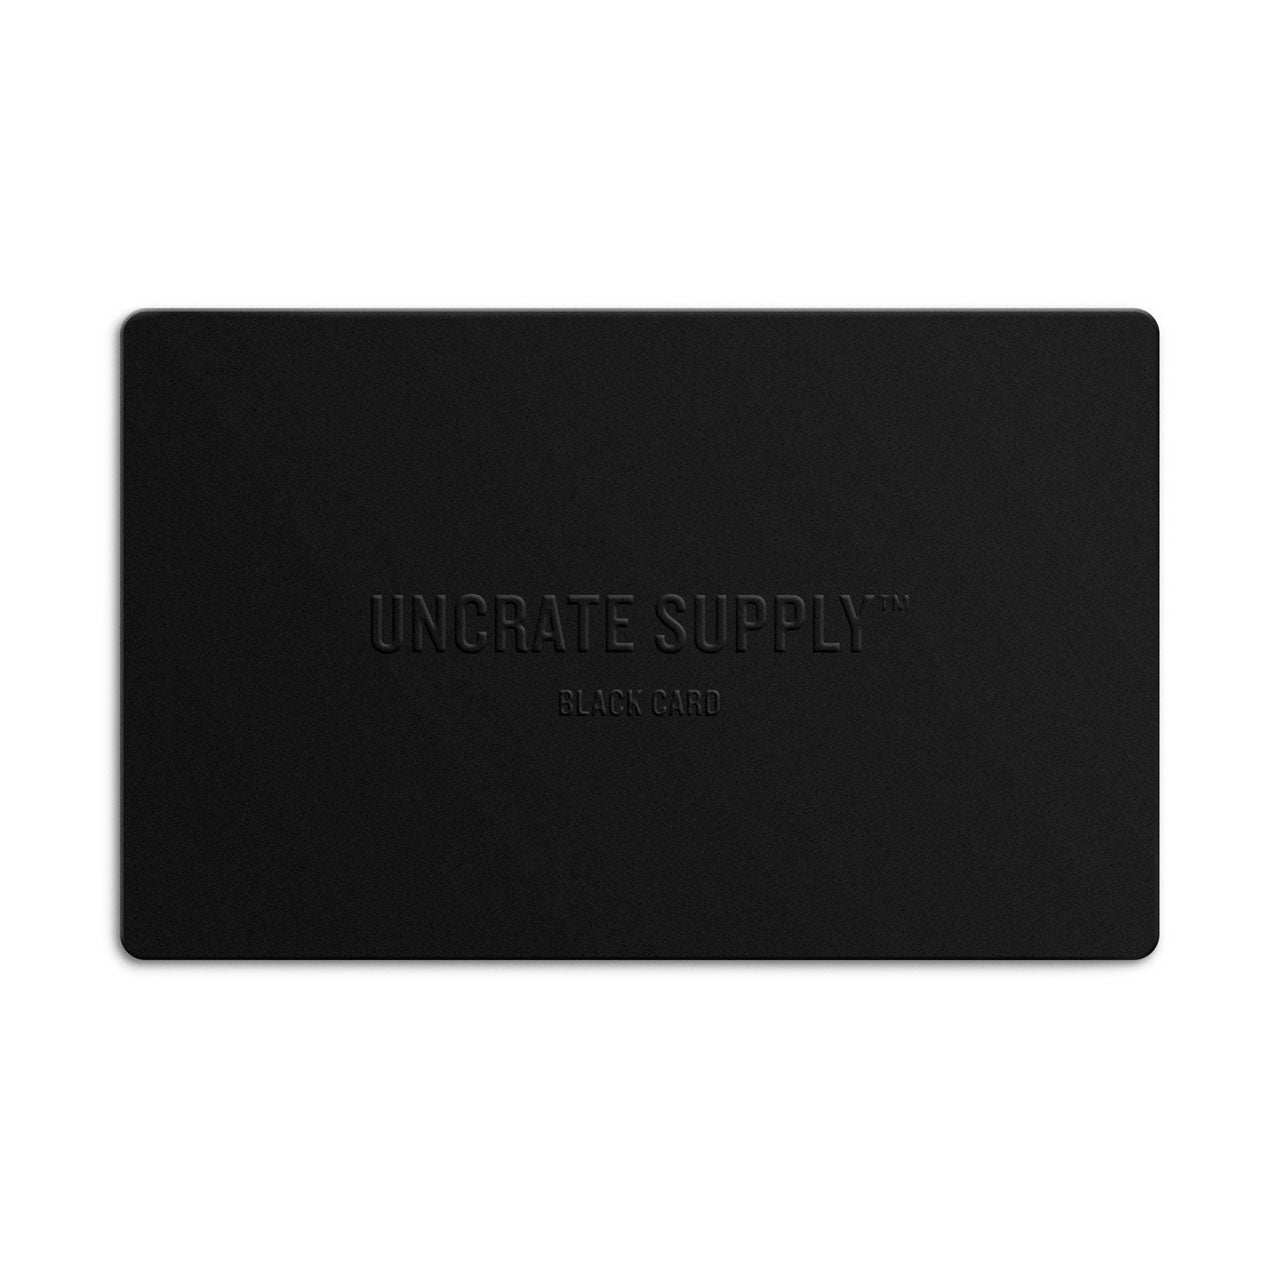 Uncrate Supply Digital Gift Card